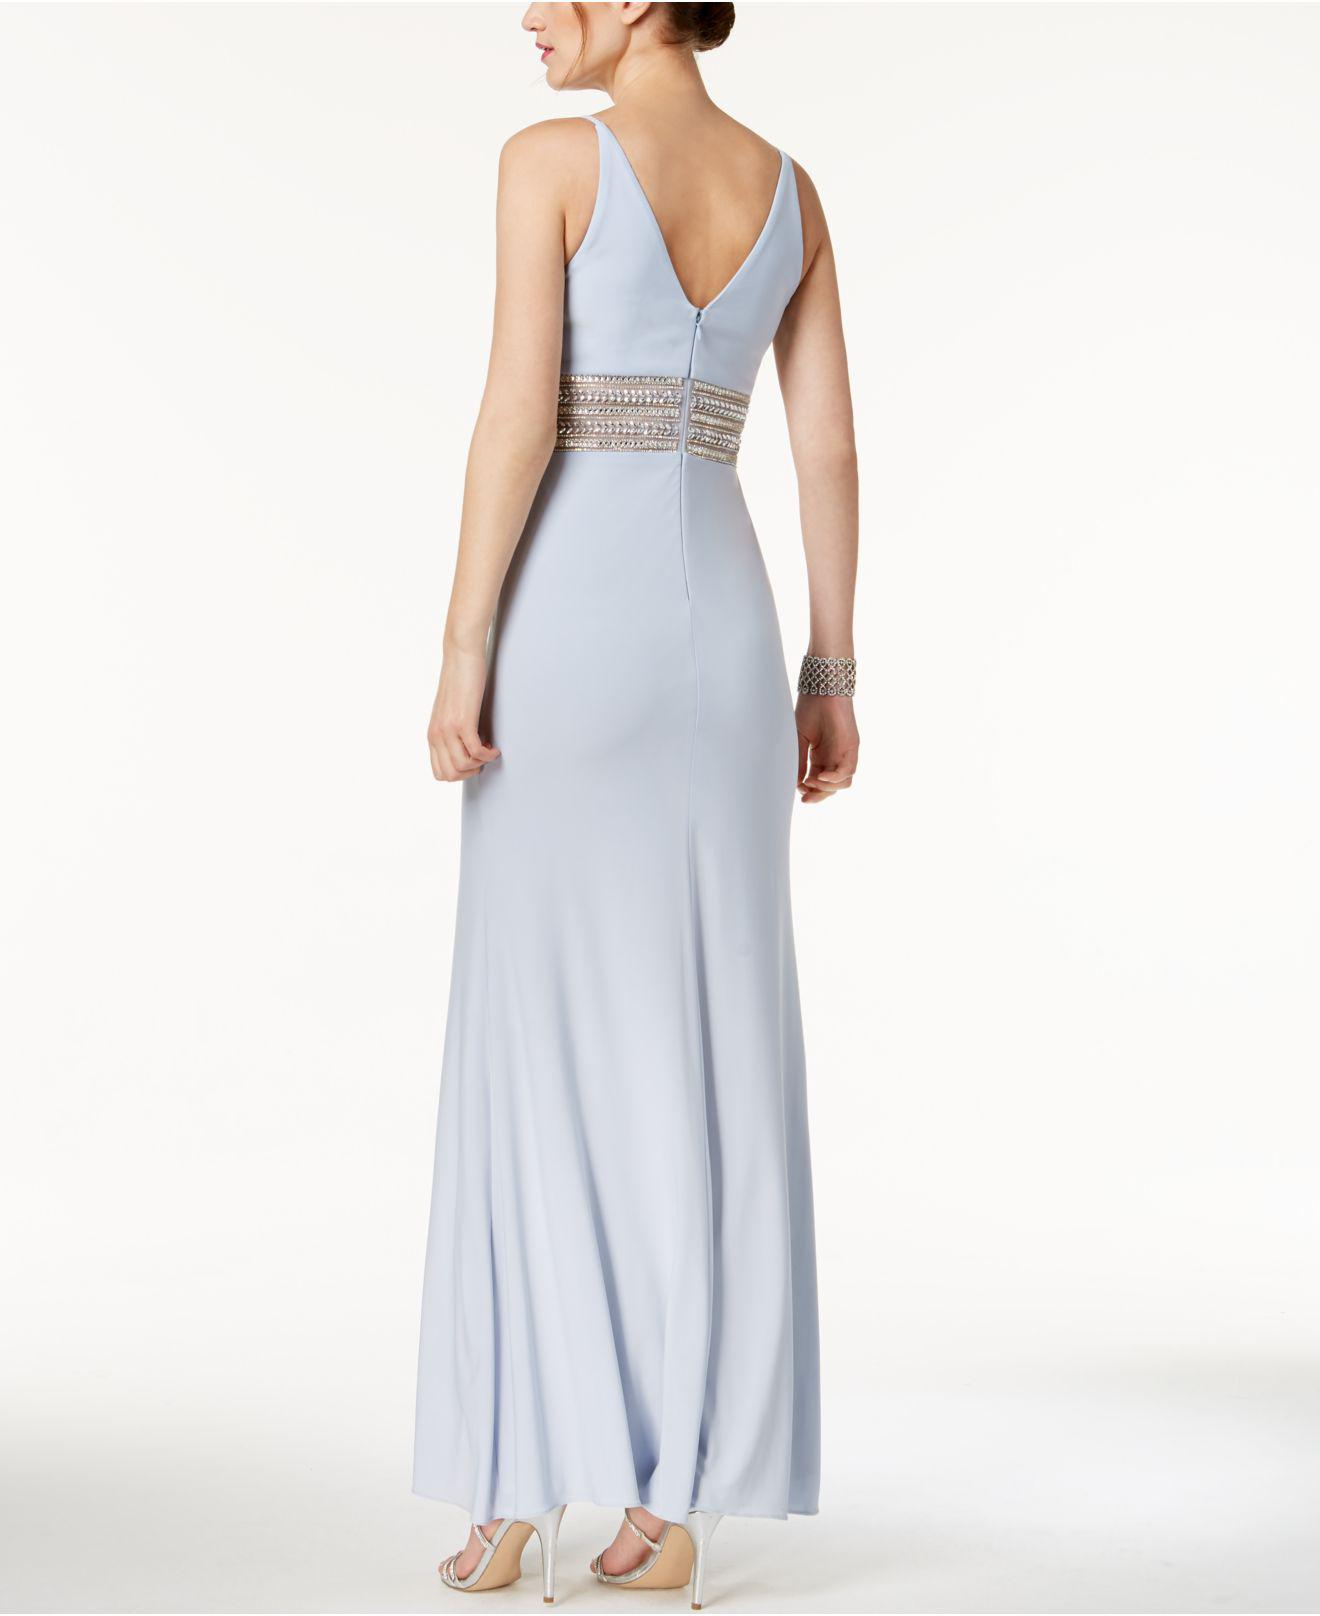 Lyst - Xscape Beaded Plunge Gown in Blue